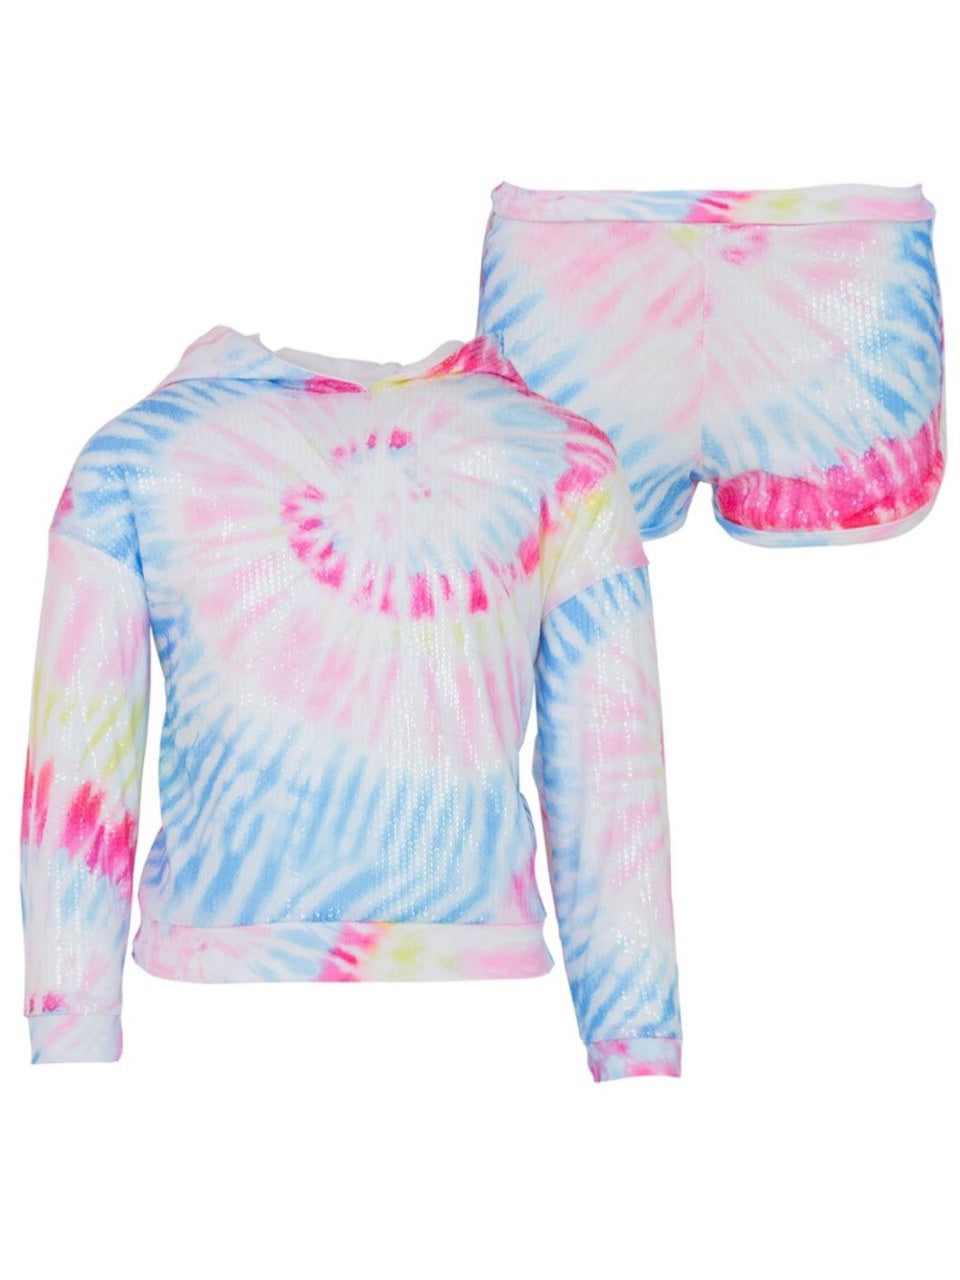 Lola And The Boys Tie Dye Sequin Hoodie Set